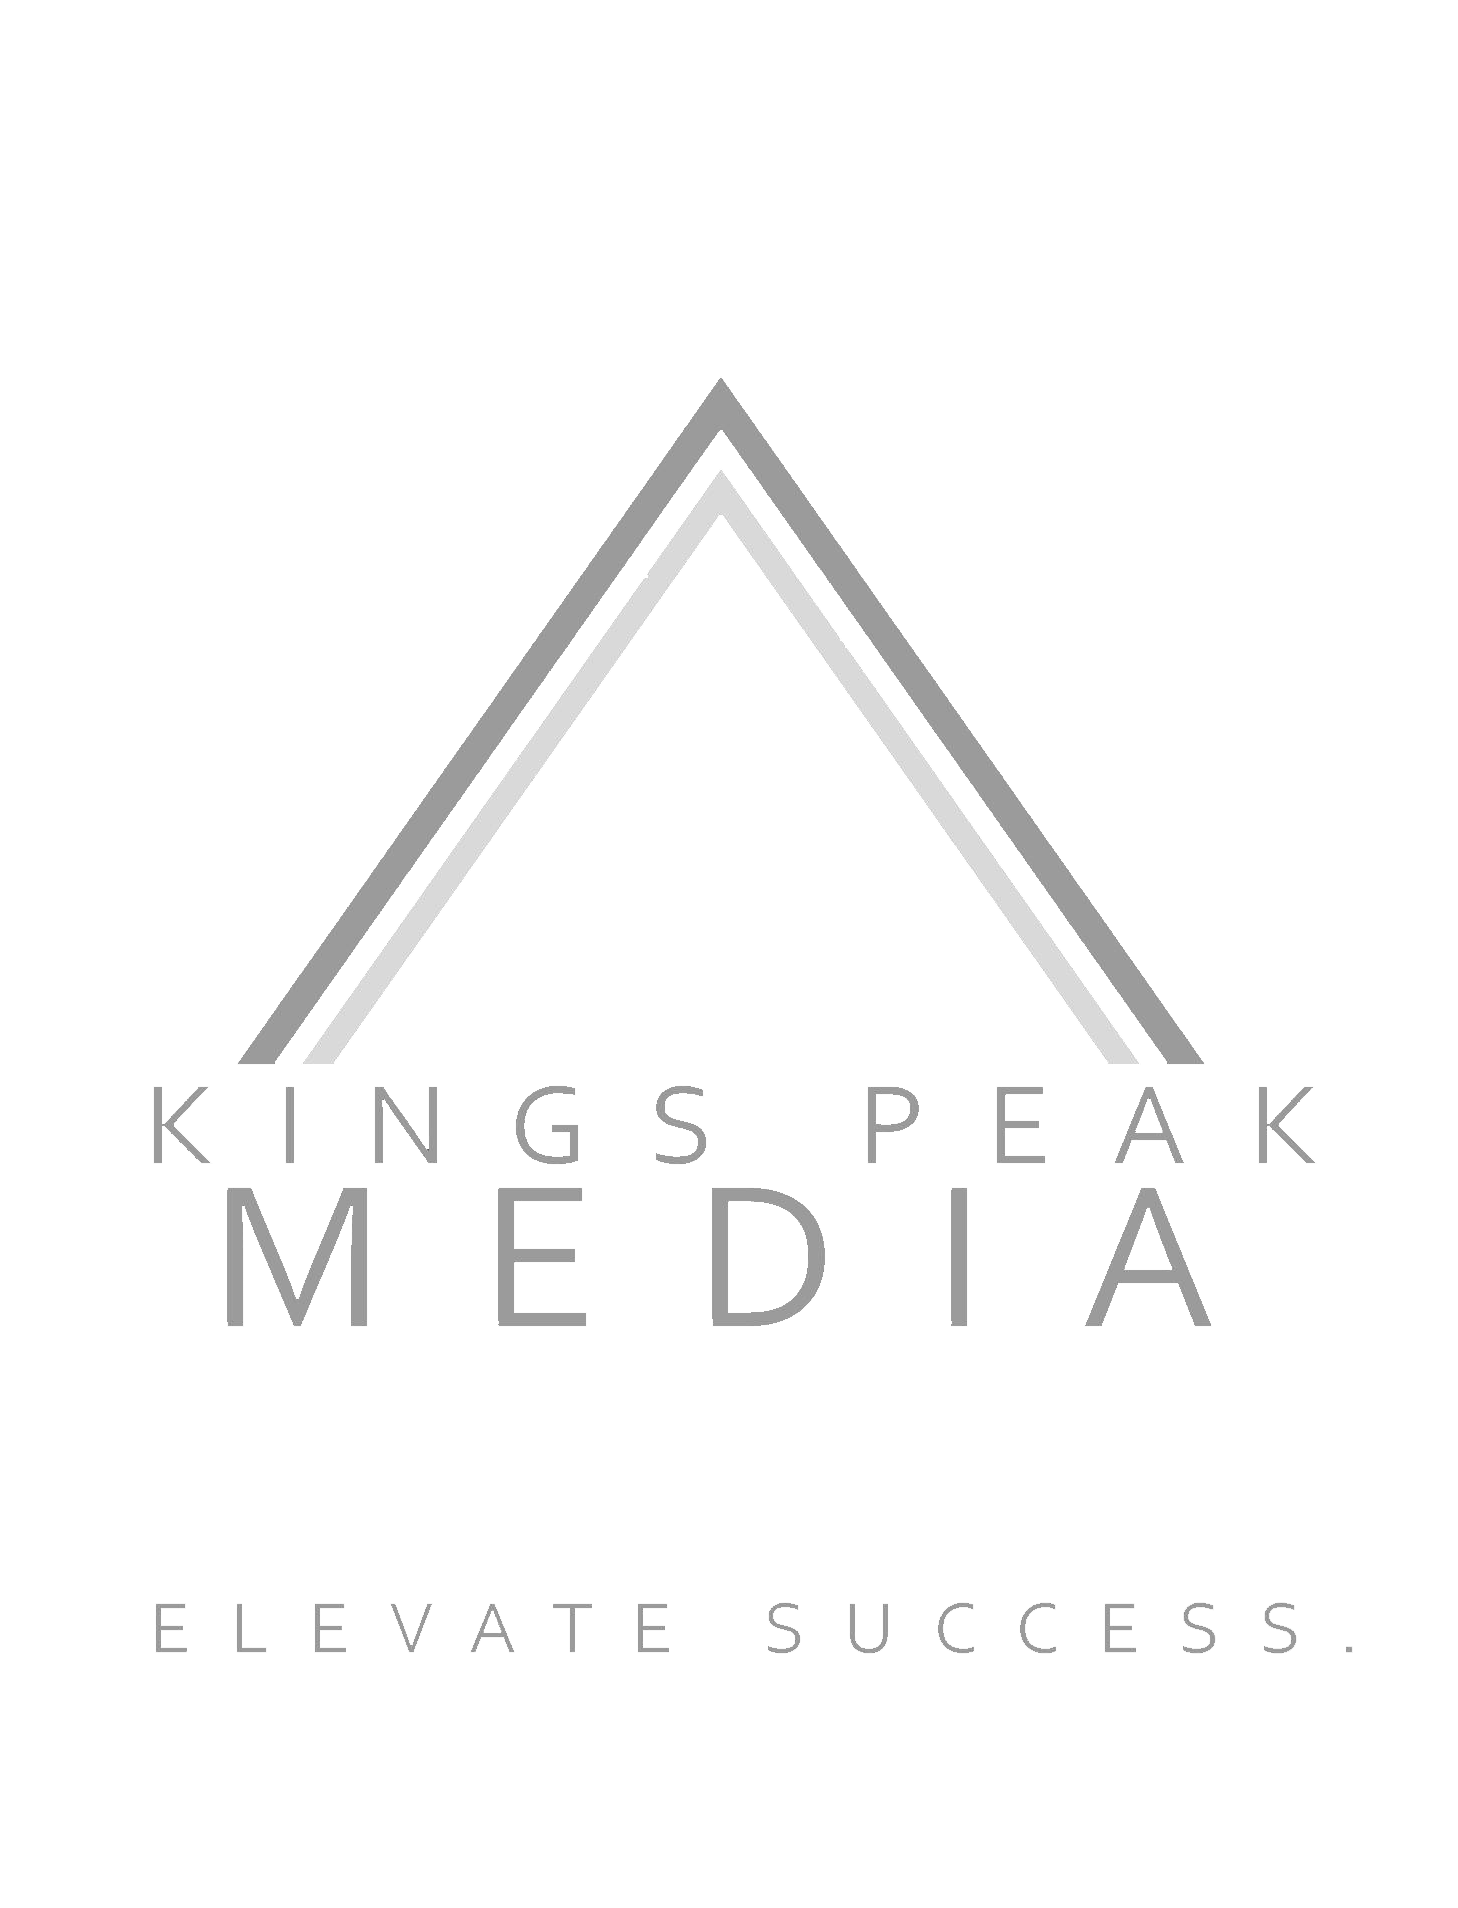 Kings Peak Media